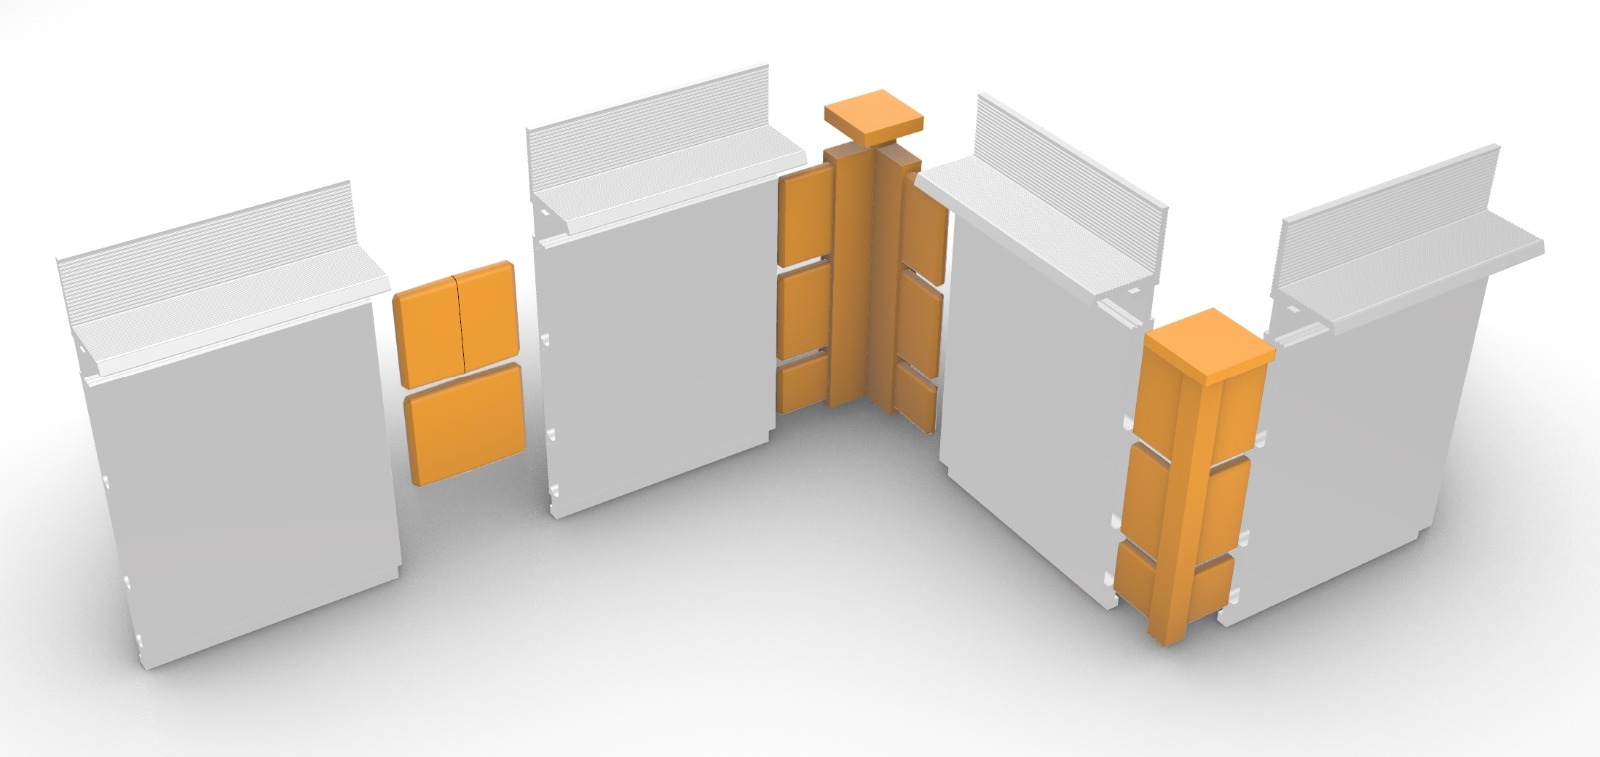 Flush-to-the-wall skirting board with joints